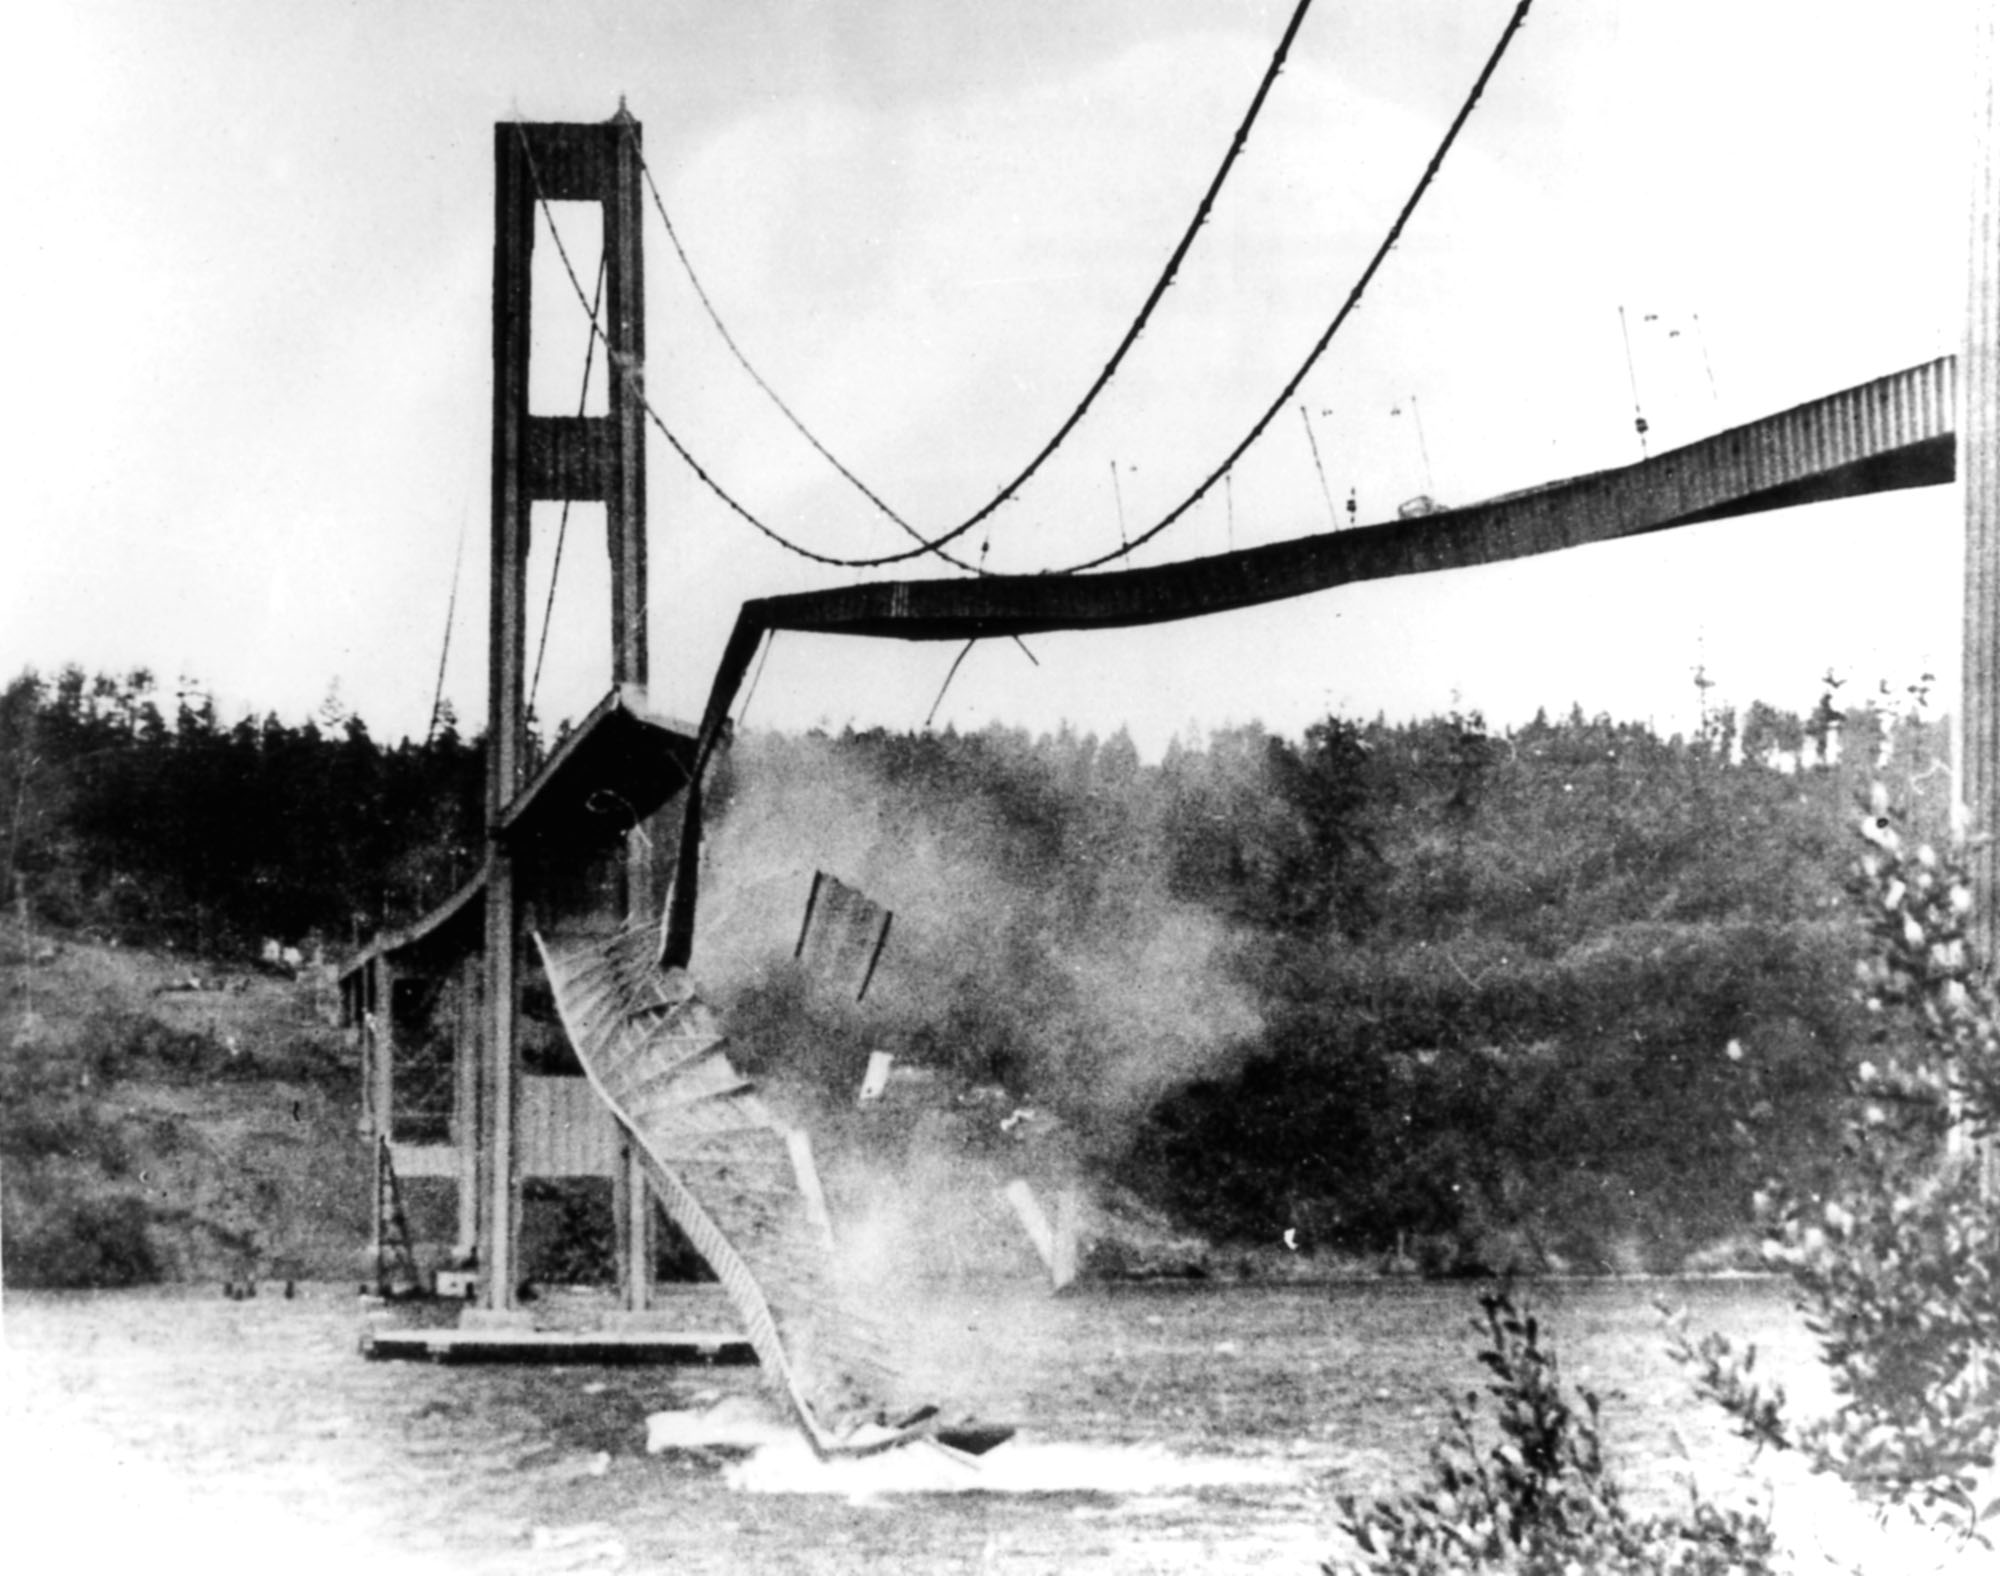 a research on the responsibilities of an engineer and the collapse of the tacoma narrows bridge Pt 2: construction 1938-1940 the following images and text detail the construction of tacoma narrows bridge links to further pages on the introduction, opening, collapse, aftermath, and reconstruction are available at the bottom of the page.